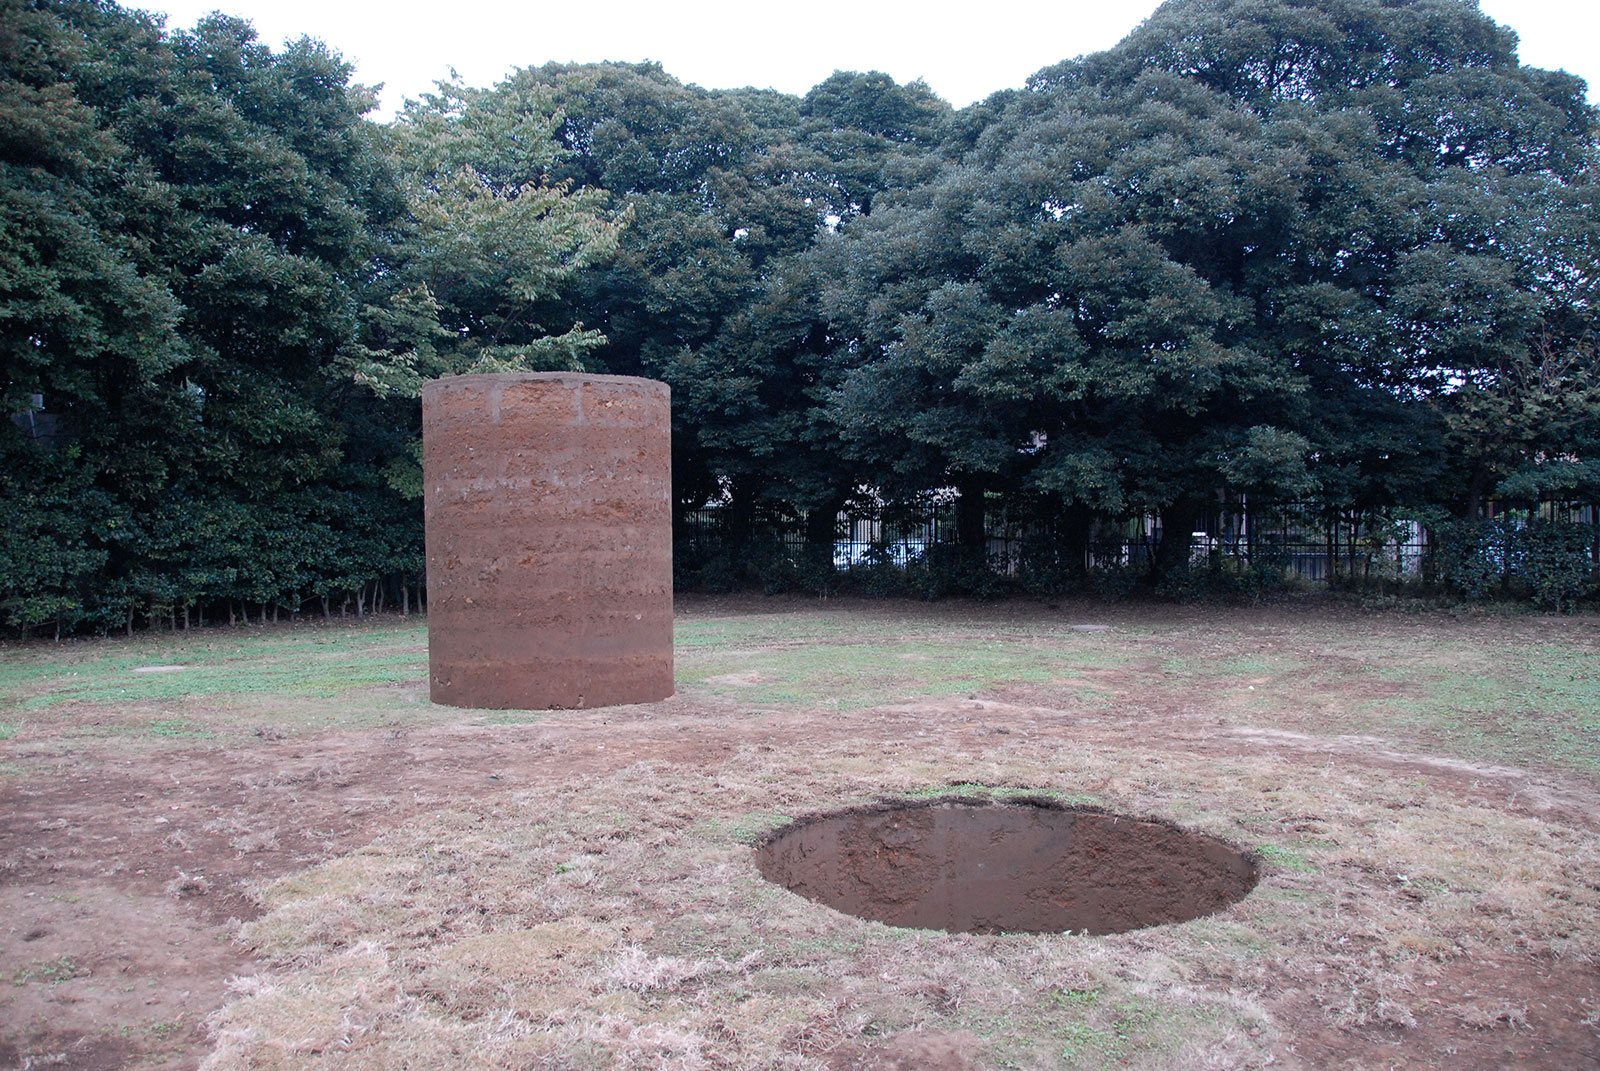 Nobuo Sekine,  Phase—Mother Earth , 1968 / 2008, Earth, cement, Cylinder: 220 x 270 (diameter) cm, Hole: 220 x 270 (diameter) cm, Installation view,  Tama Line Art Project,  Den-en Chōfu Seseragi Park, Tokyo, November 1 - 9, 2008. Photo: Ashley Rawlings.